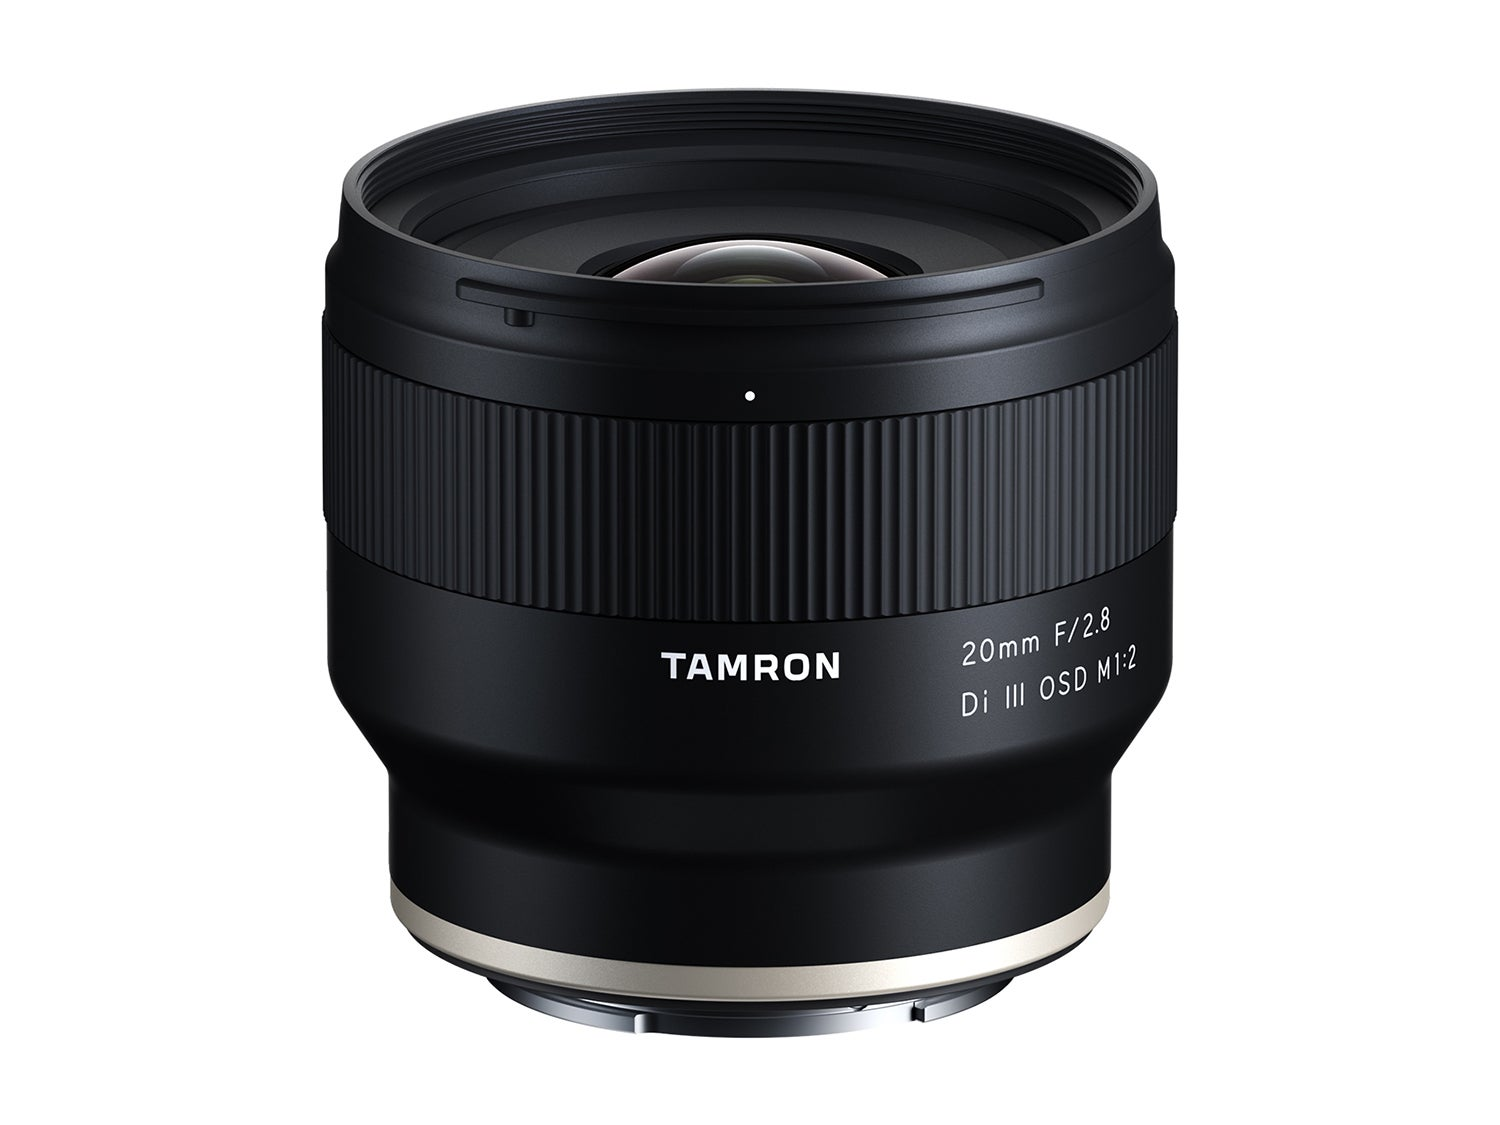 Tamron 20mm F/2.8 lens for Sony cameras